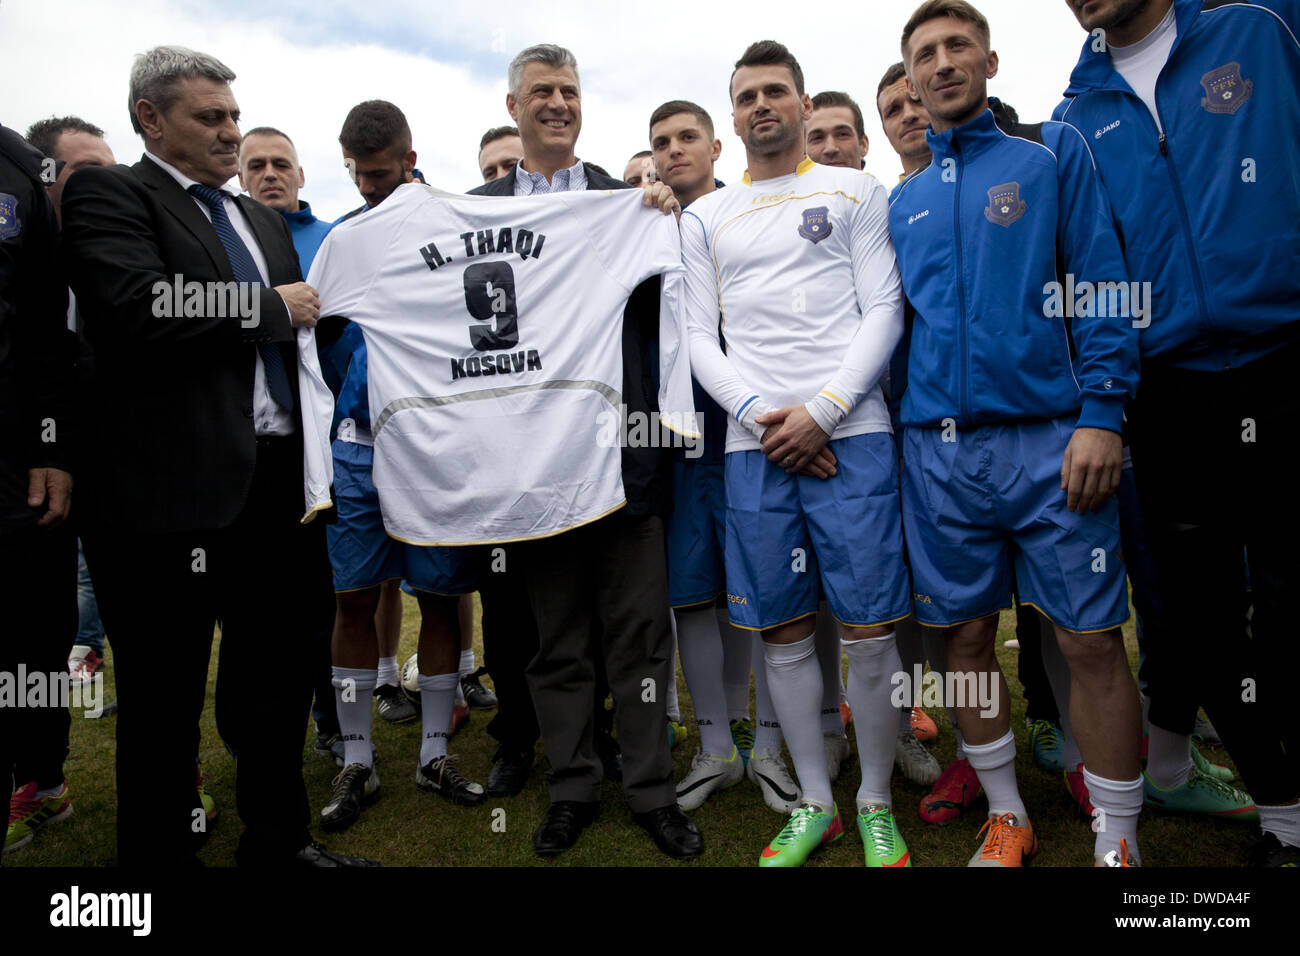 Pristina, Kosovo. 4th Mar, 2014. Kosovo's Prime Minister Hashim Thaci stands with members of the Kosovo National Team before practice at the KeK stadium on the Kastriot/Obilic district of Pristina. The will play their first FIFA sanctioned match, a friendly game against Haiti, on Wednesday March 5. PHOTO BY JODI HILTON/NURPHOTO © Jodi Hilton/NurPhoto/ZUMAPRESS.com/Alamy Live News - Stock Image